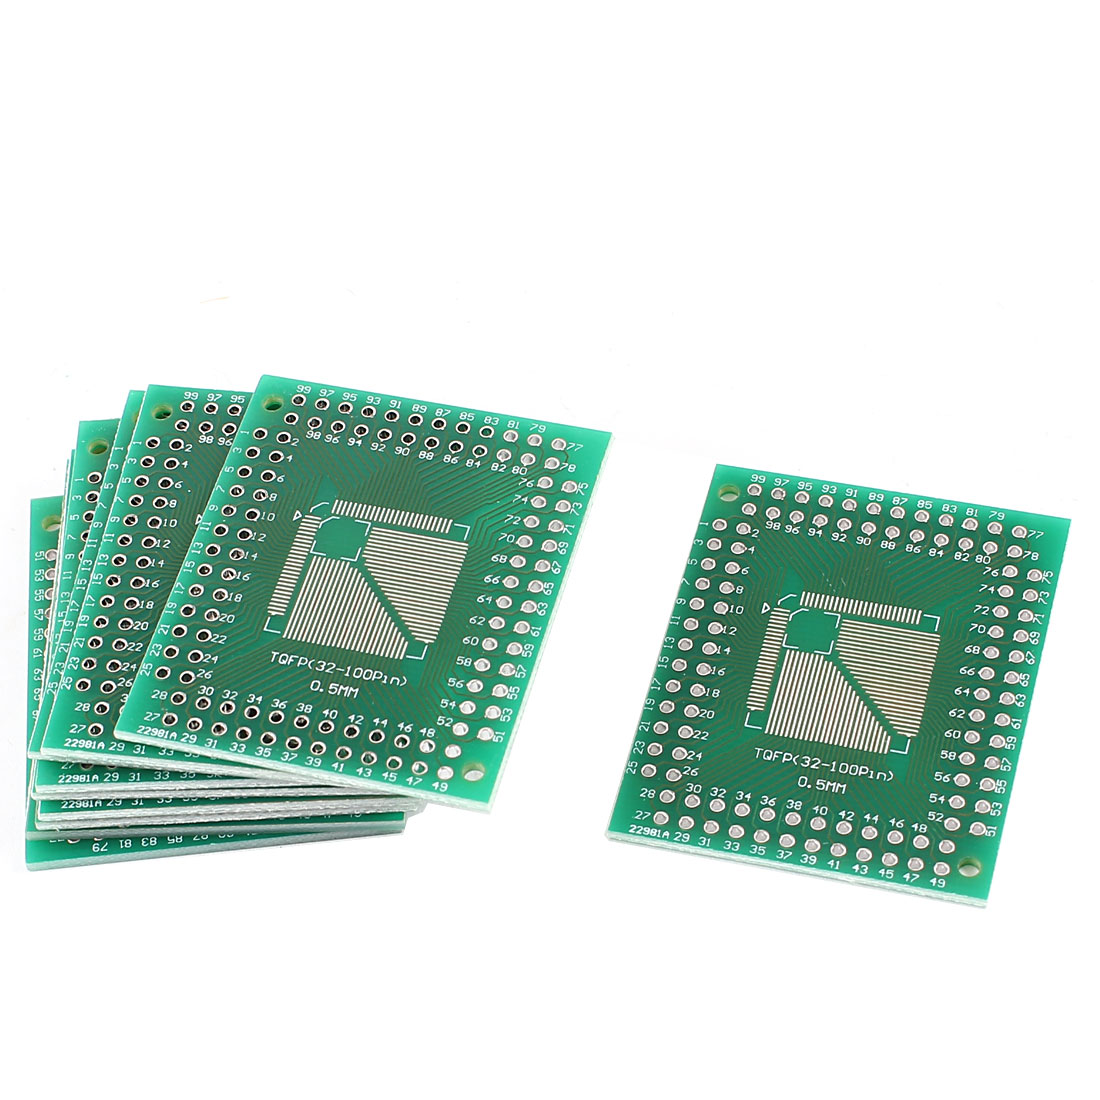 10 Pcs Double Side 0.5mm to 0.8mm Pitch PCB Circuit Universal Adapter Board 38mmx46mm